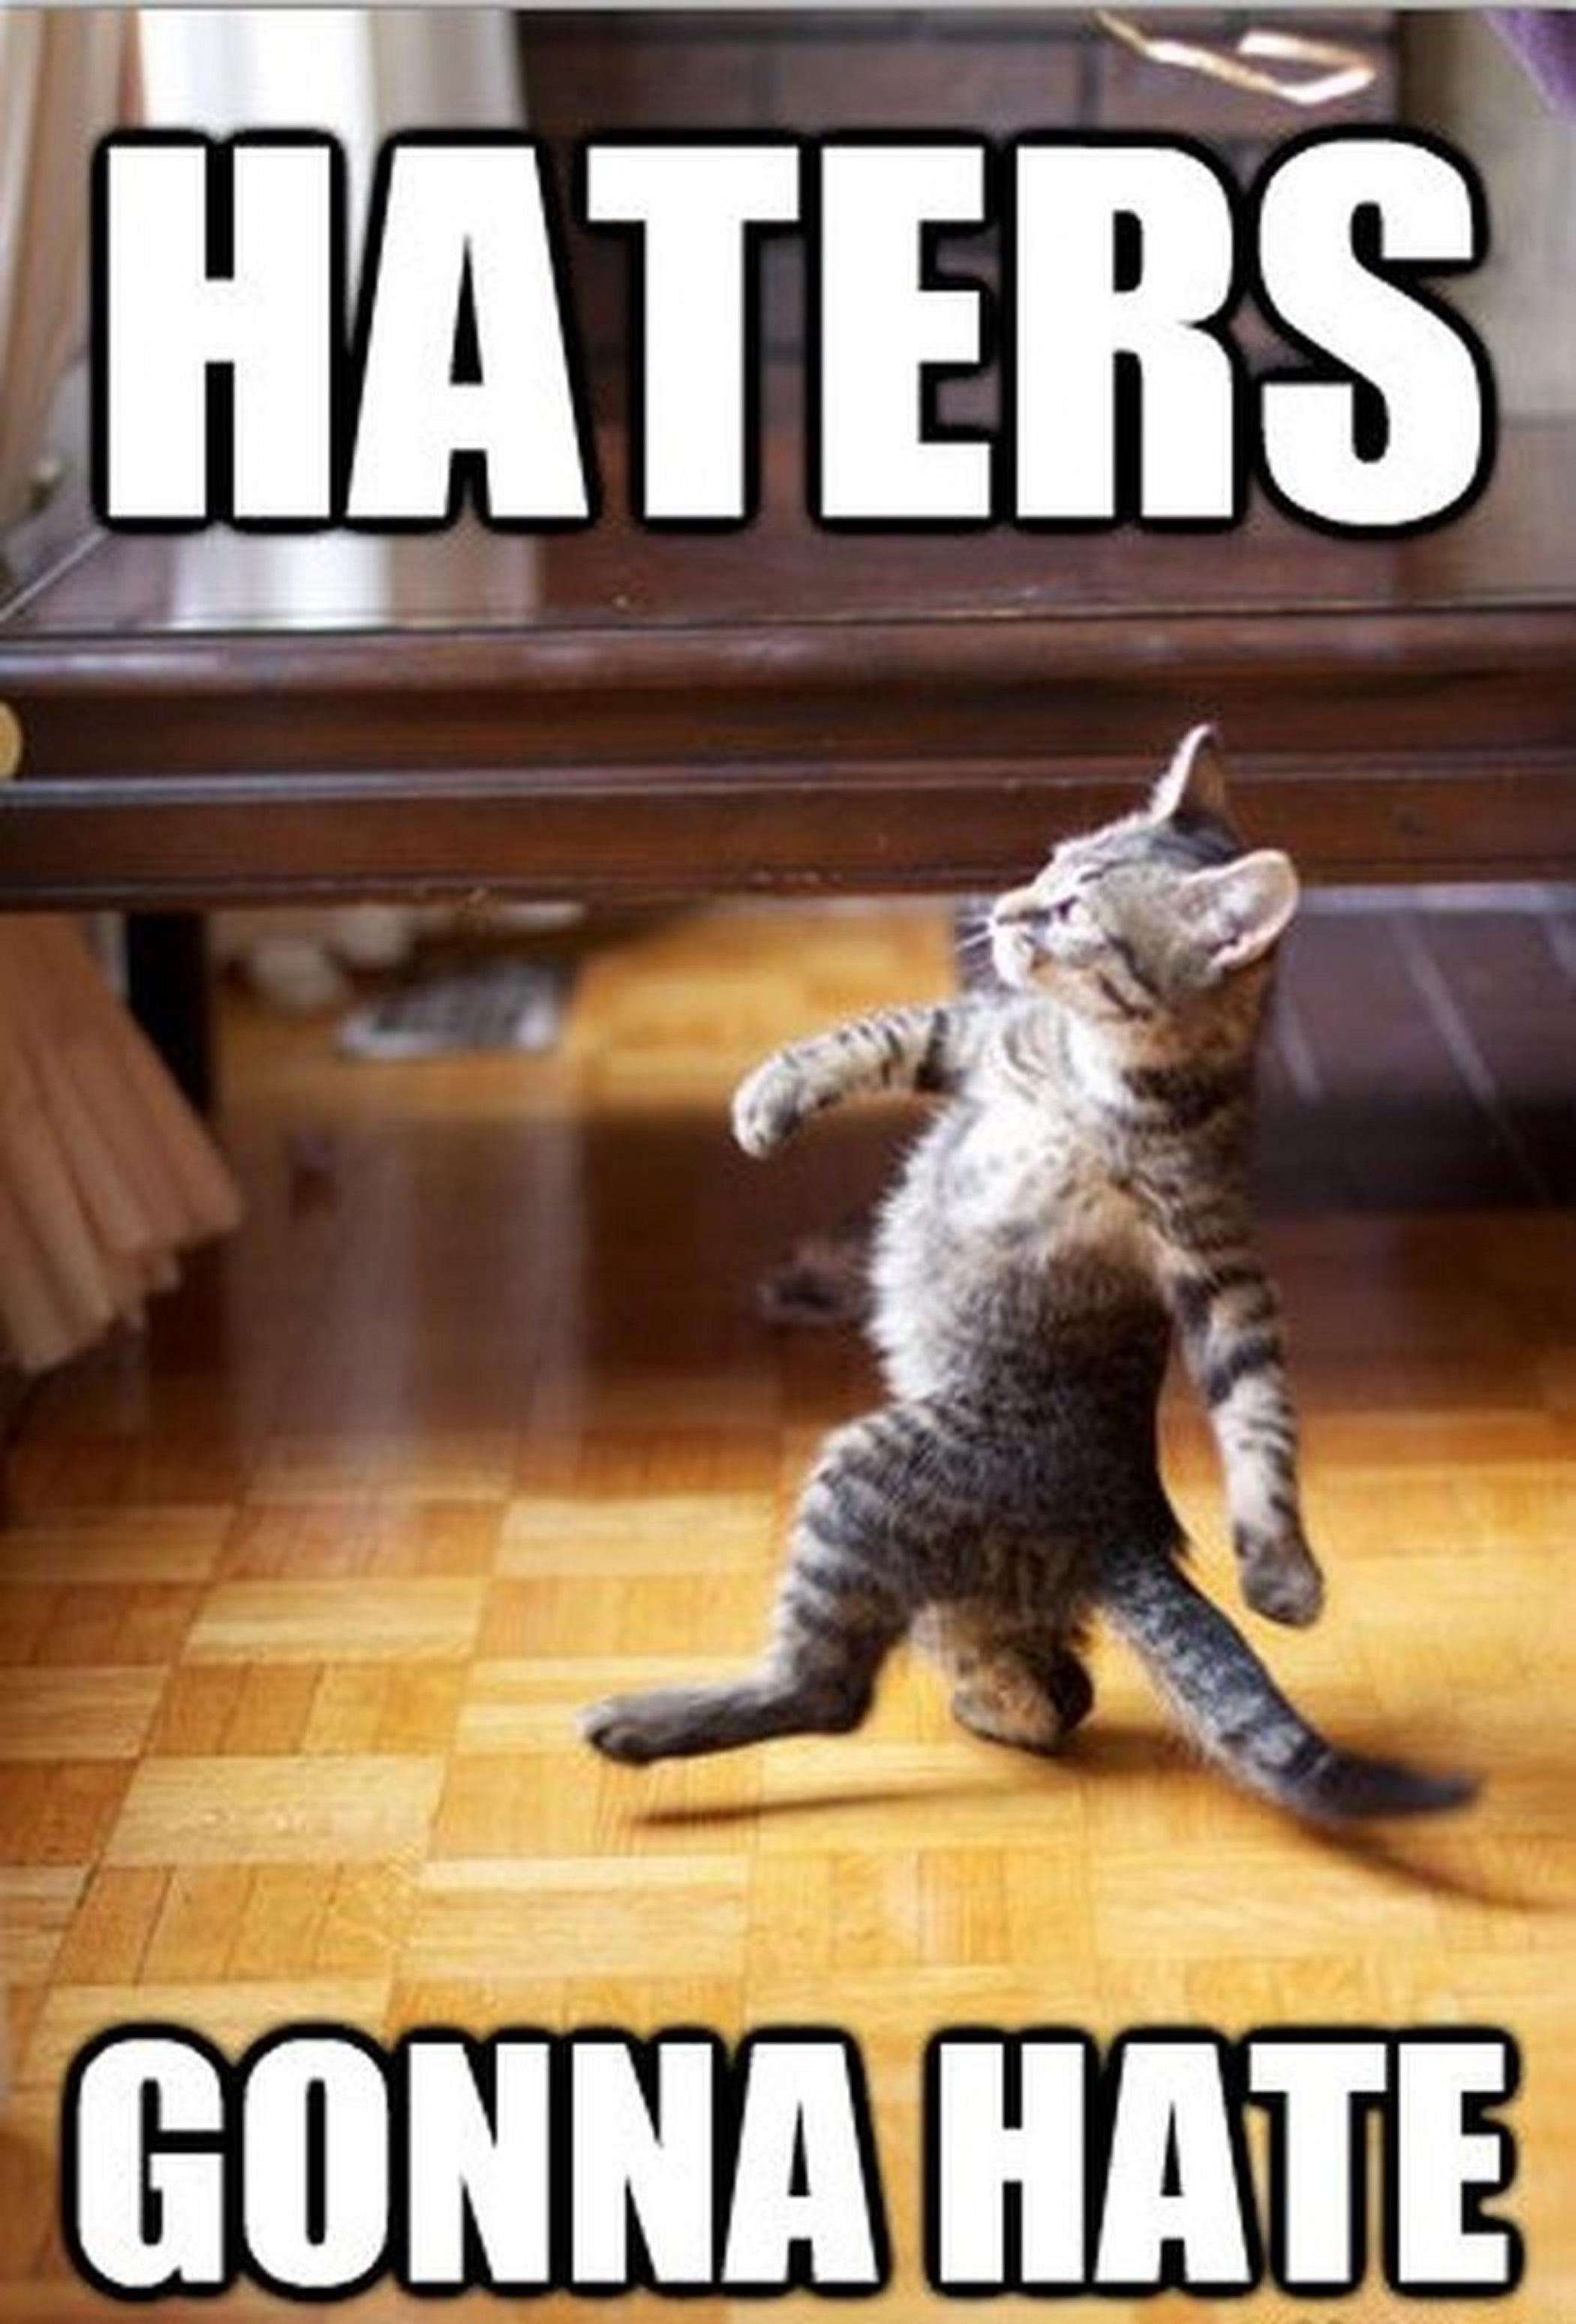 funny-cat-haters-gonna-hate-4815.jpg